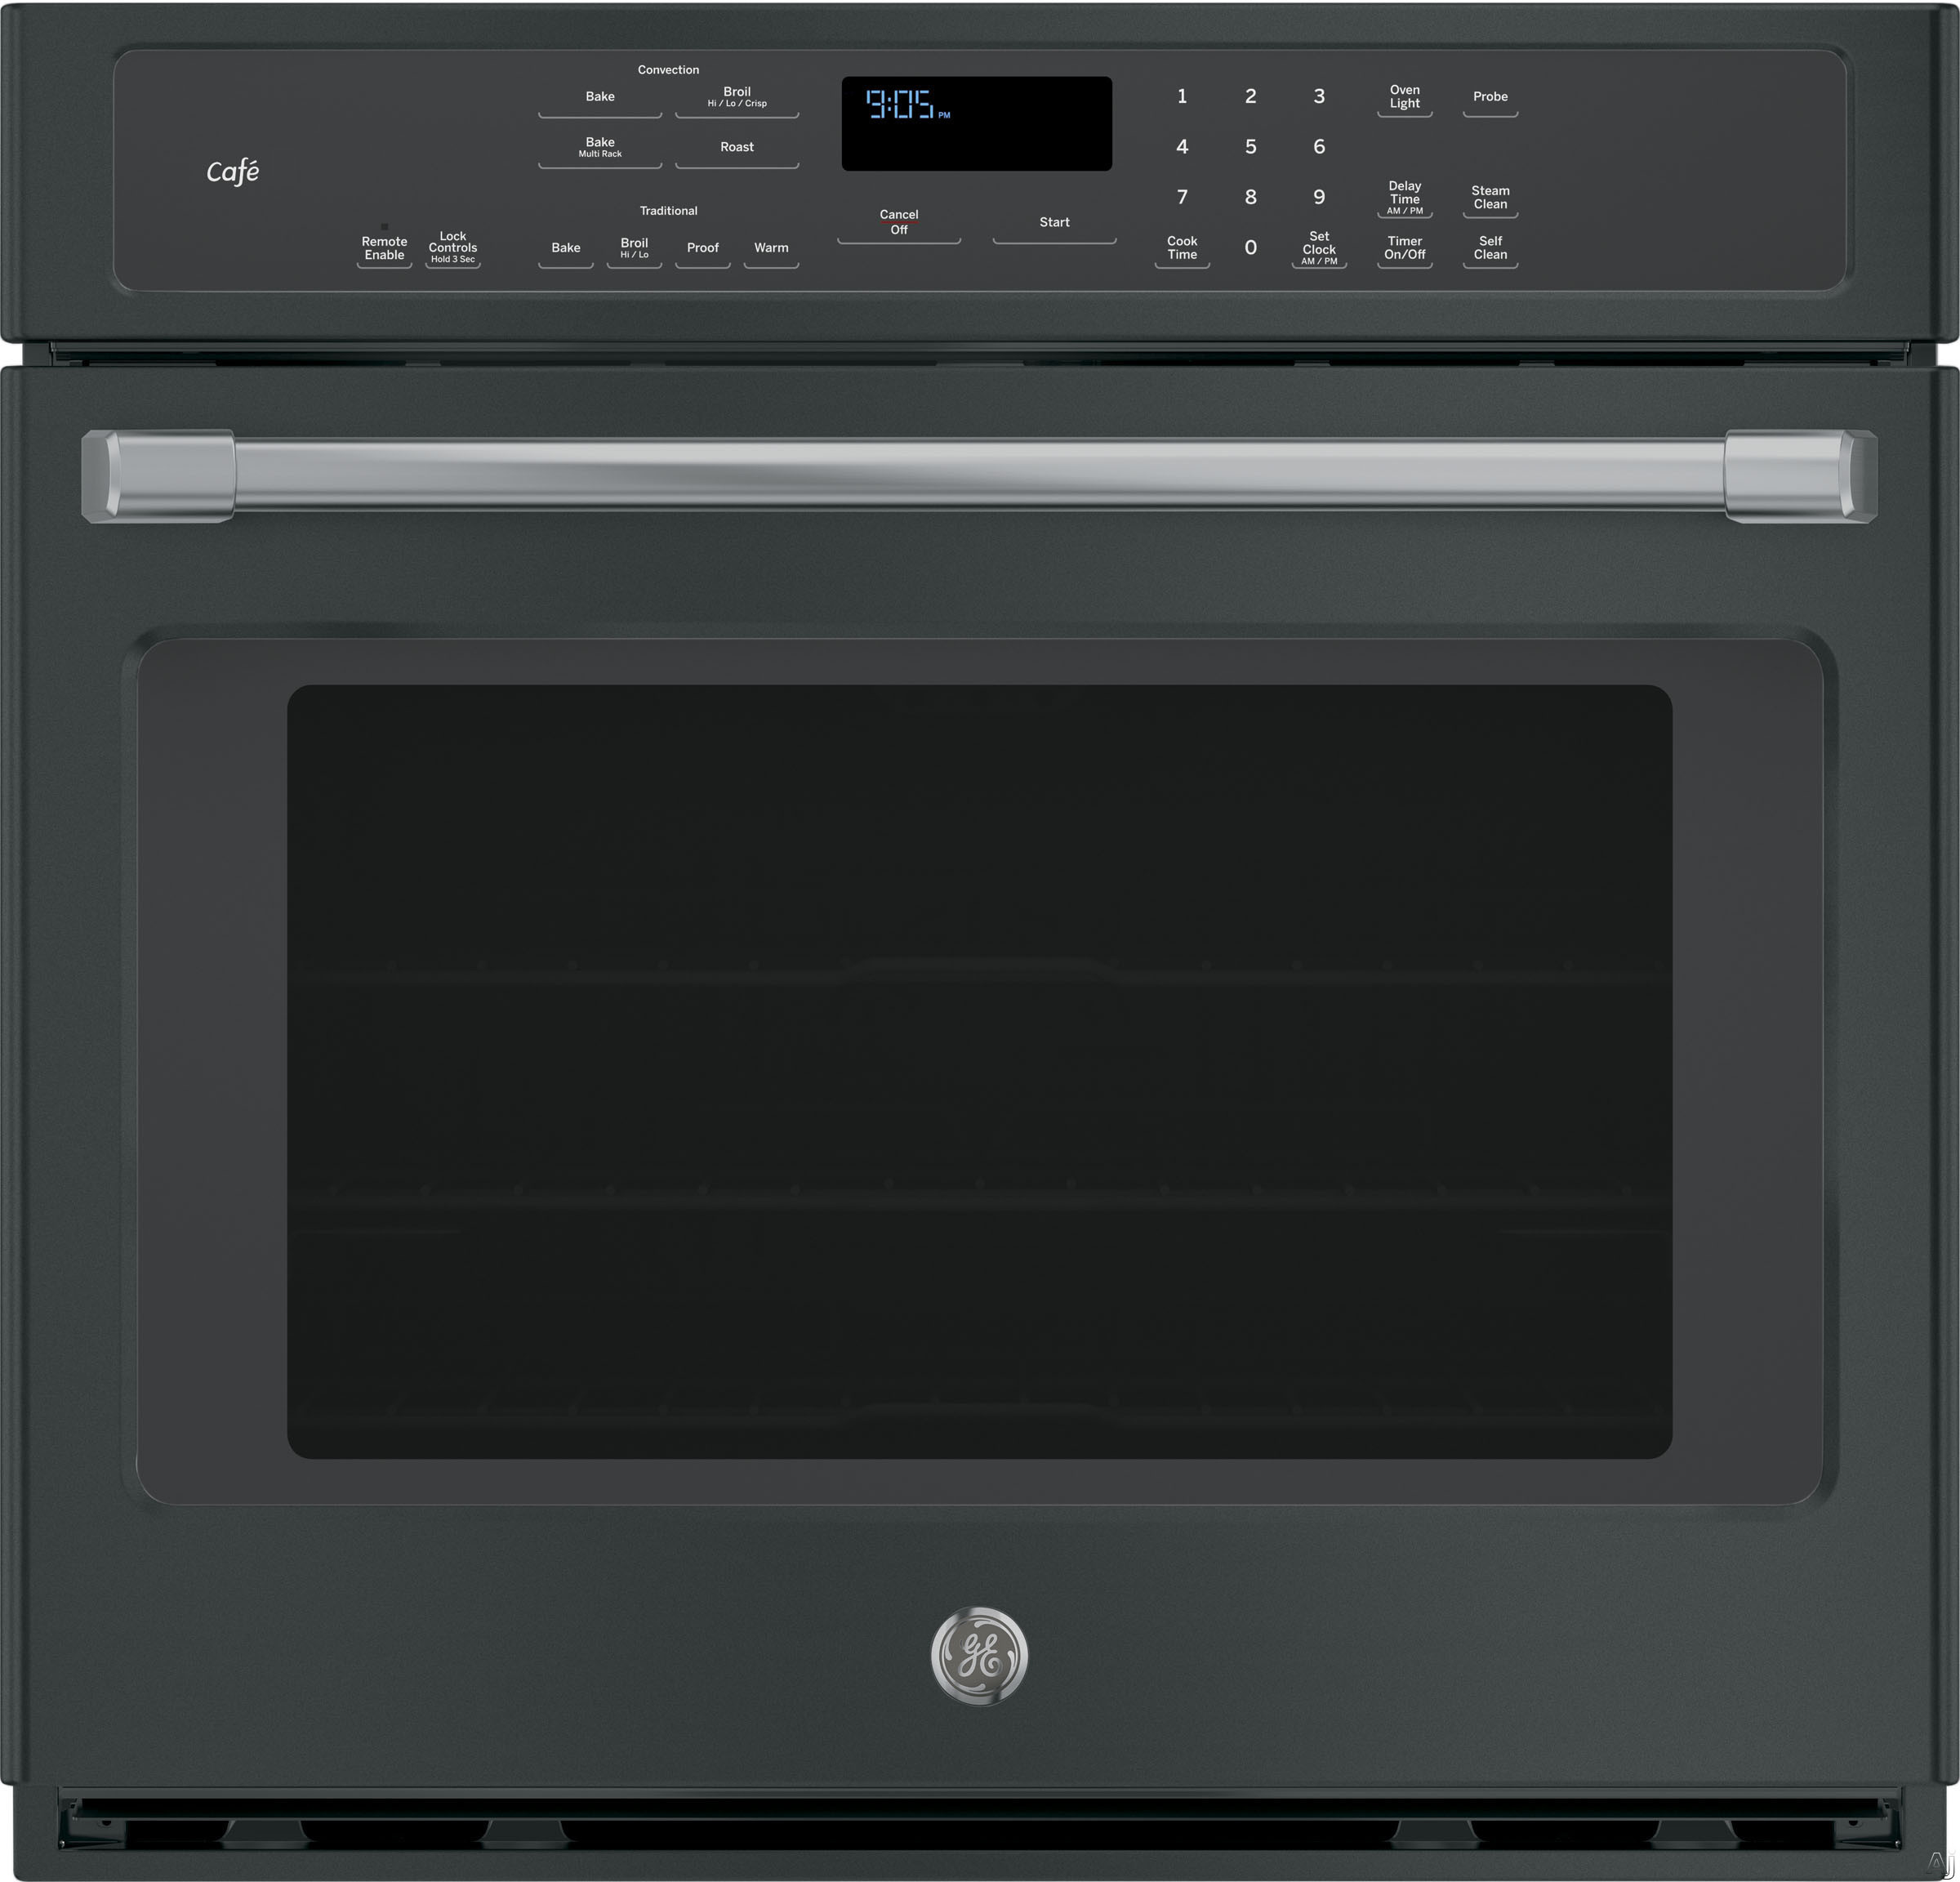 GE Cafe Series CT9050S 30 Inch Single Electric Wall Oven with 5.0 cu. ft. True European Convection Oven Capacity, WiFi Connect, Interior Halogen Lighting, GE Fits! Guarantee, Star-K Certified Sabbath